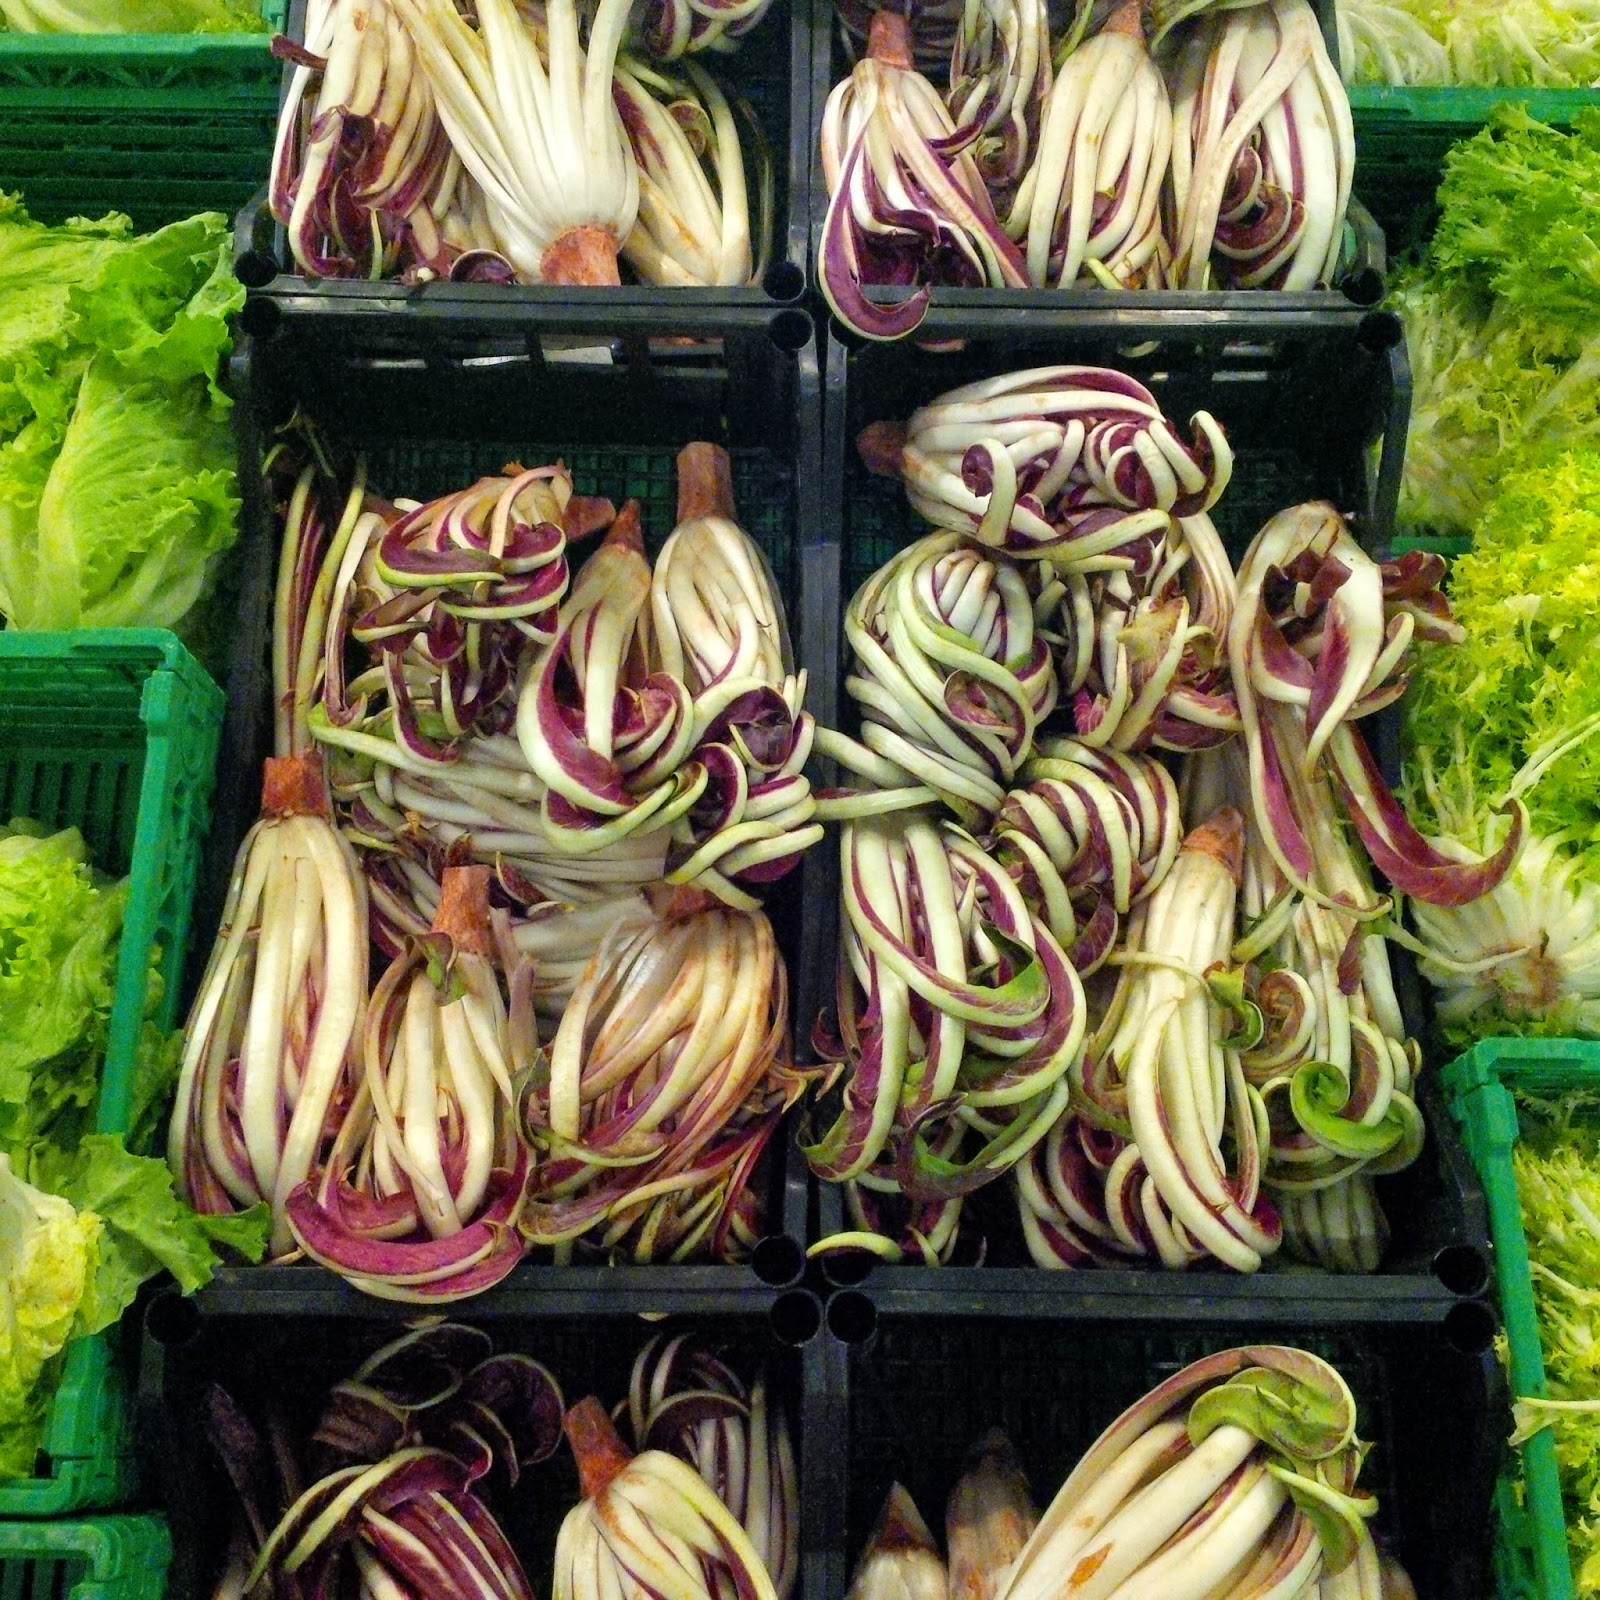 Fancy radicchio in an Italian supermarket